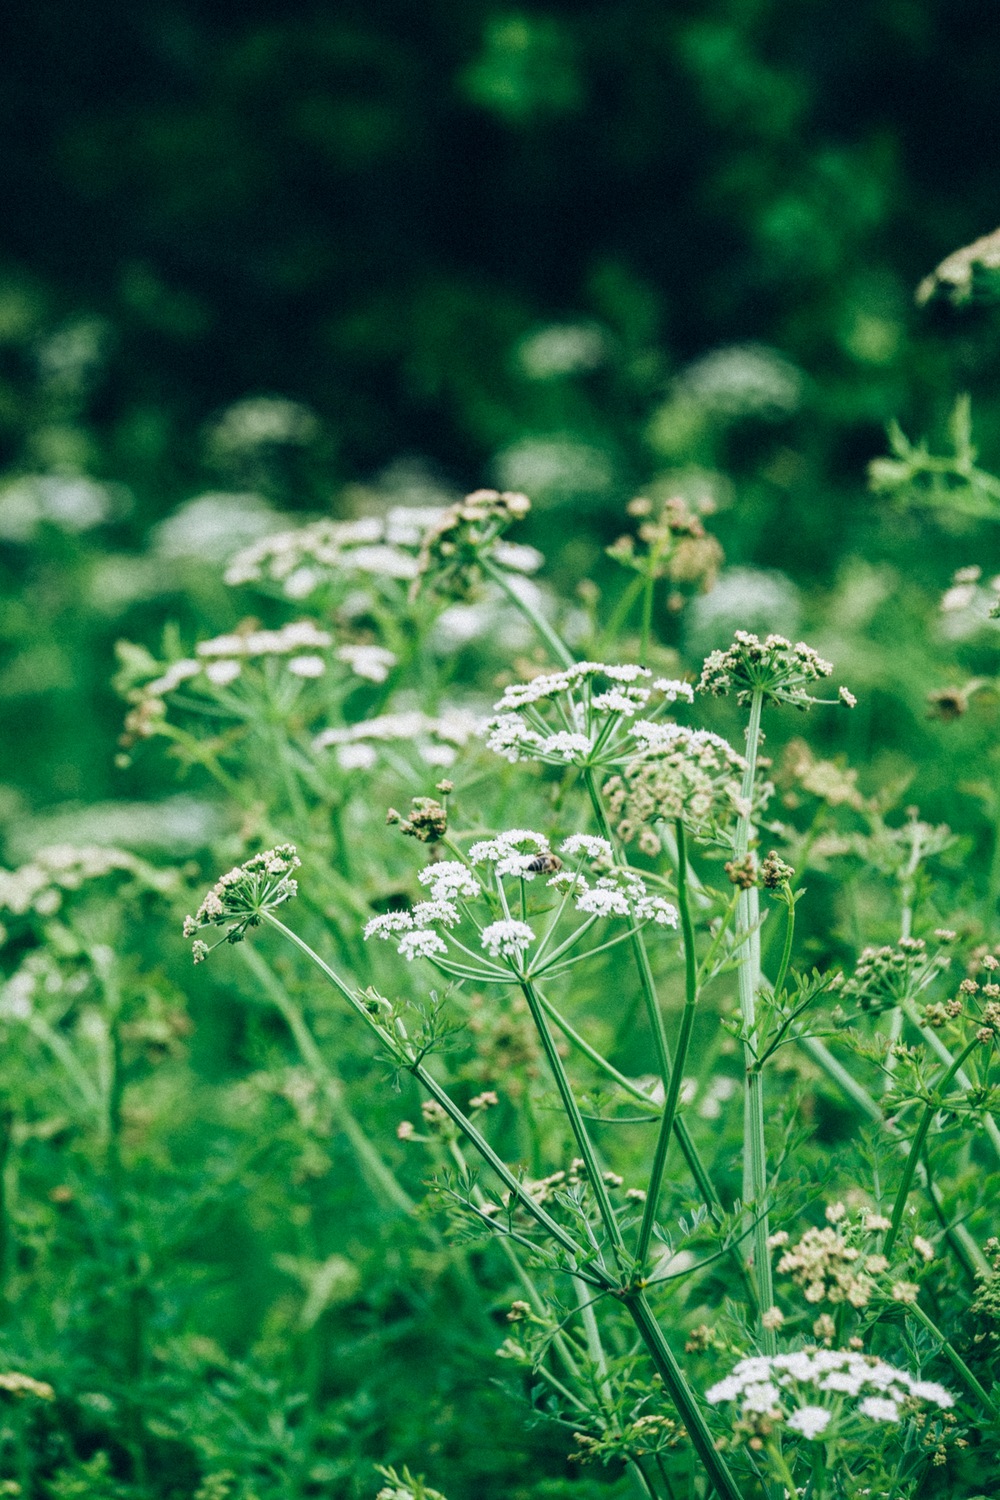 Cow Parsley / Anthriscus sylvestris / Wildflowers